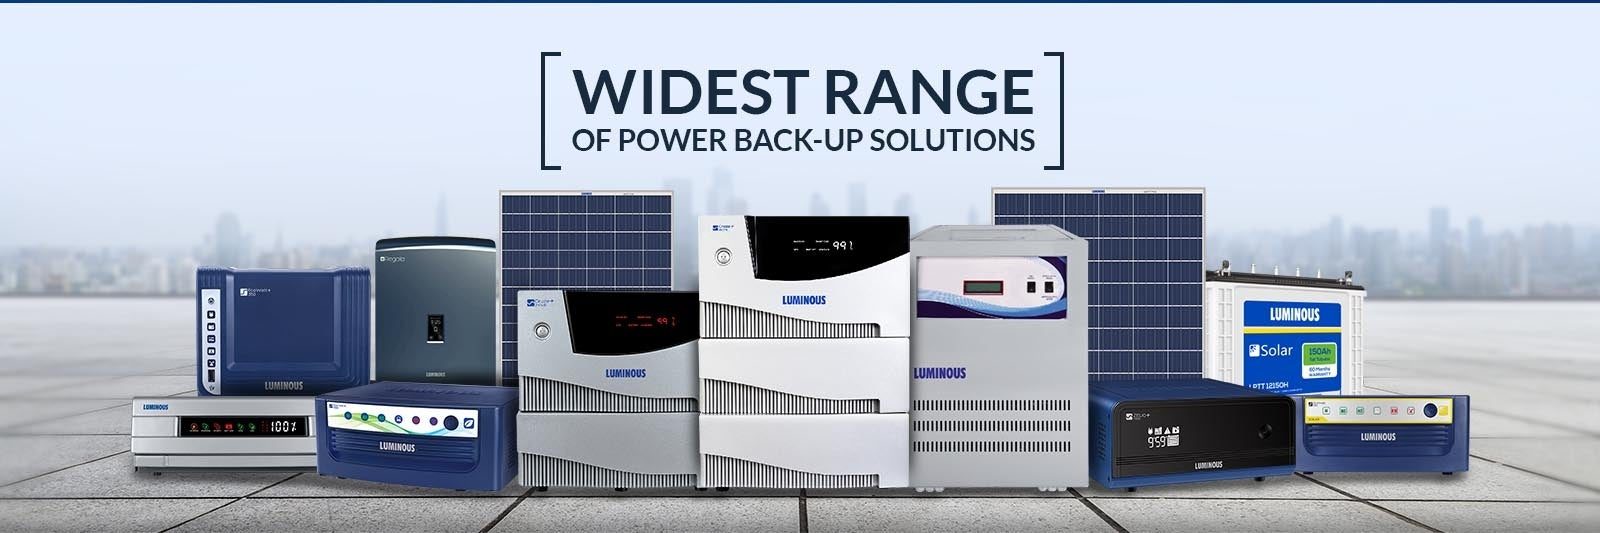 Widest range of power back-up solution